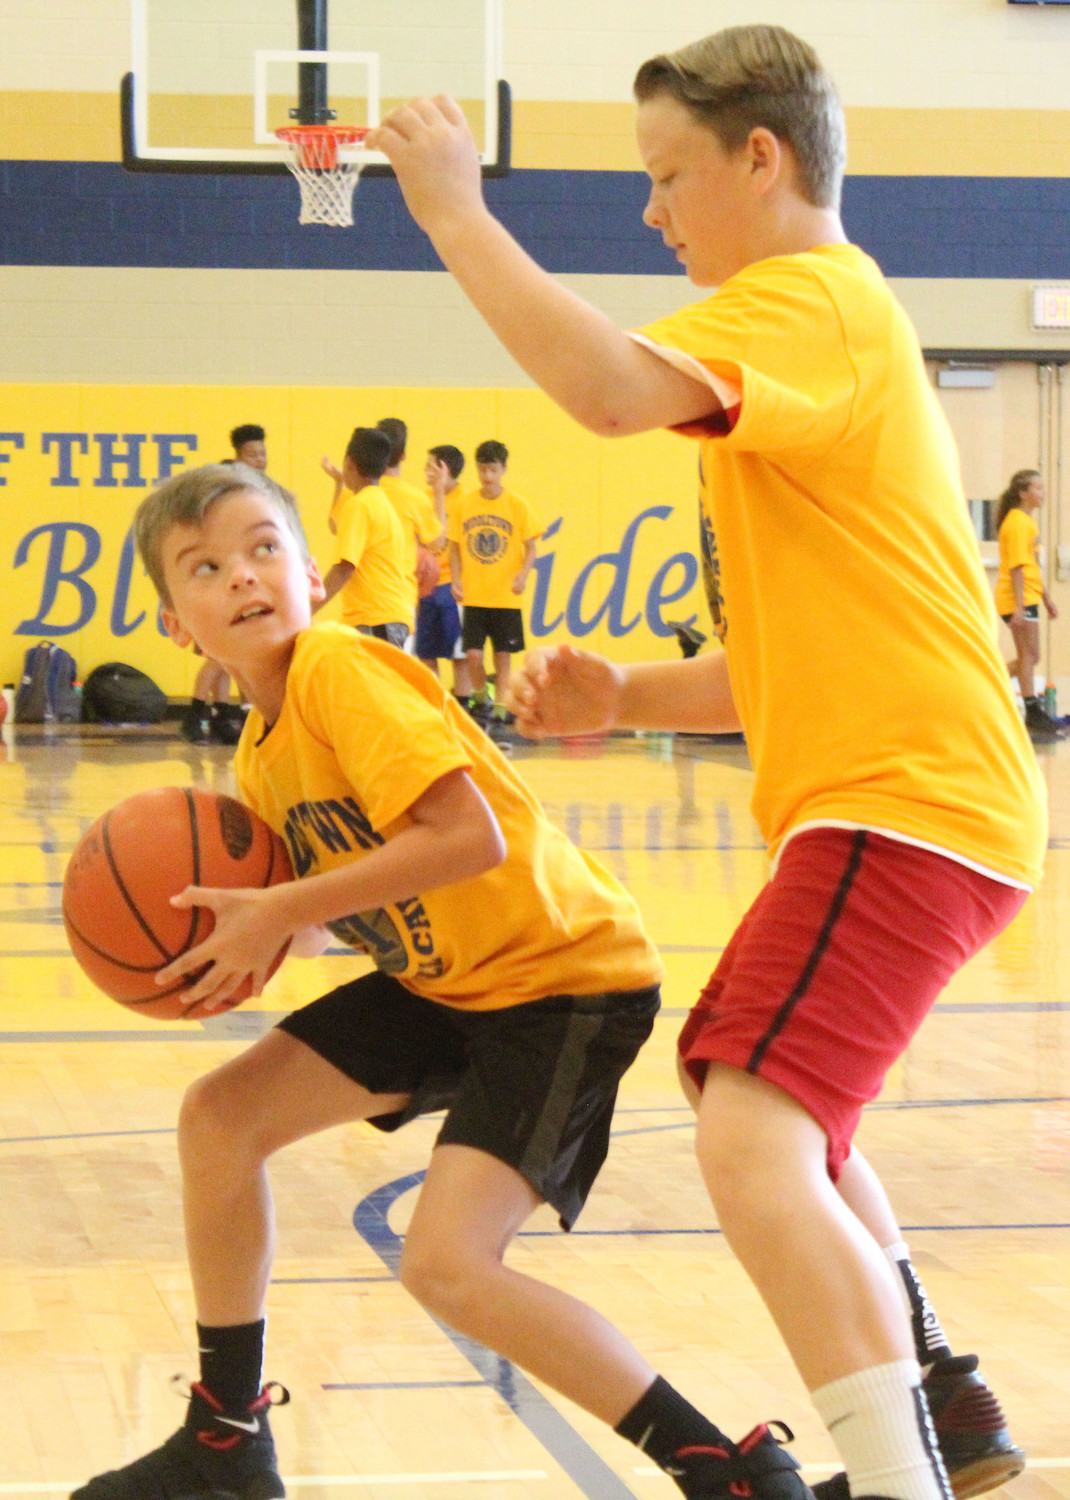 JP Horetsky blocks Parker Rios during basketball camp on July 12.